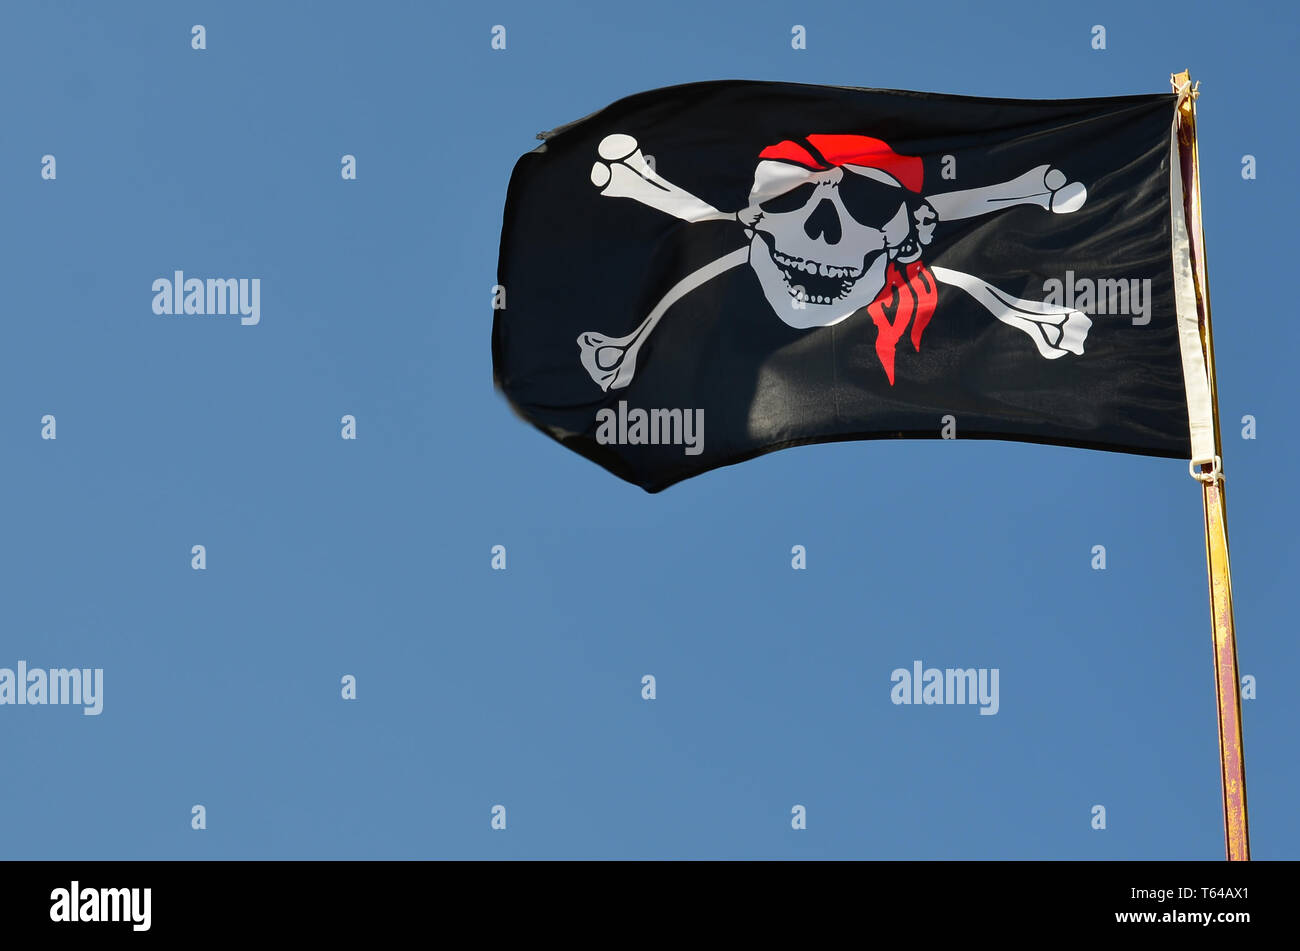 ff862e89 Pirate flag against clear, blue sky fluttering in the wind, copy space -  Stock